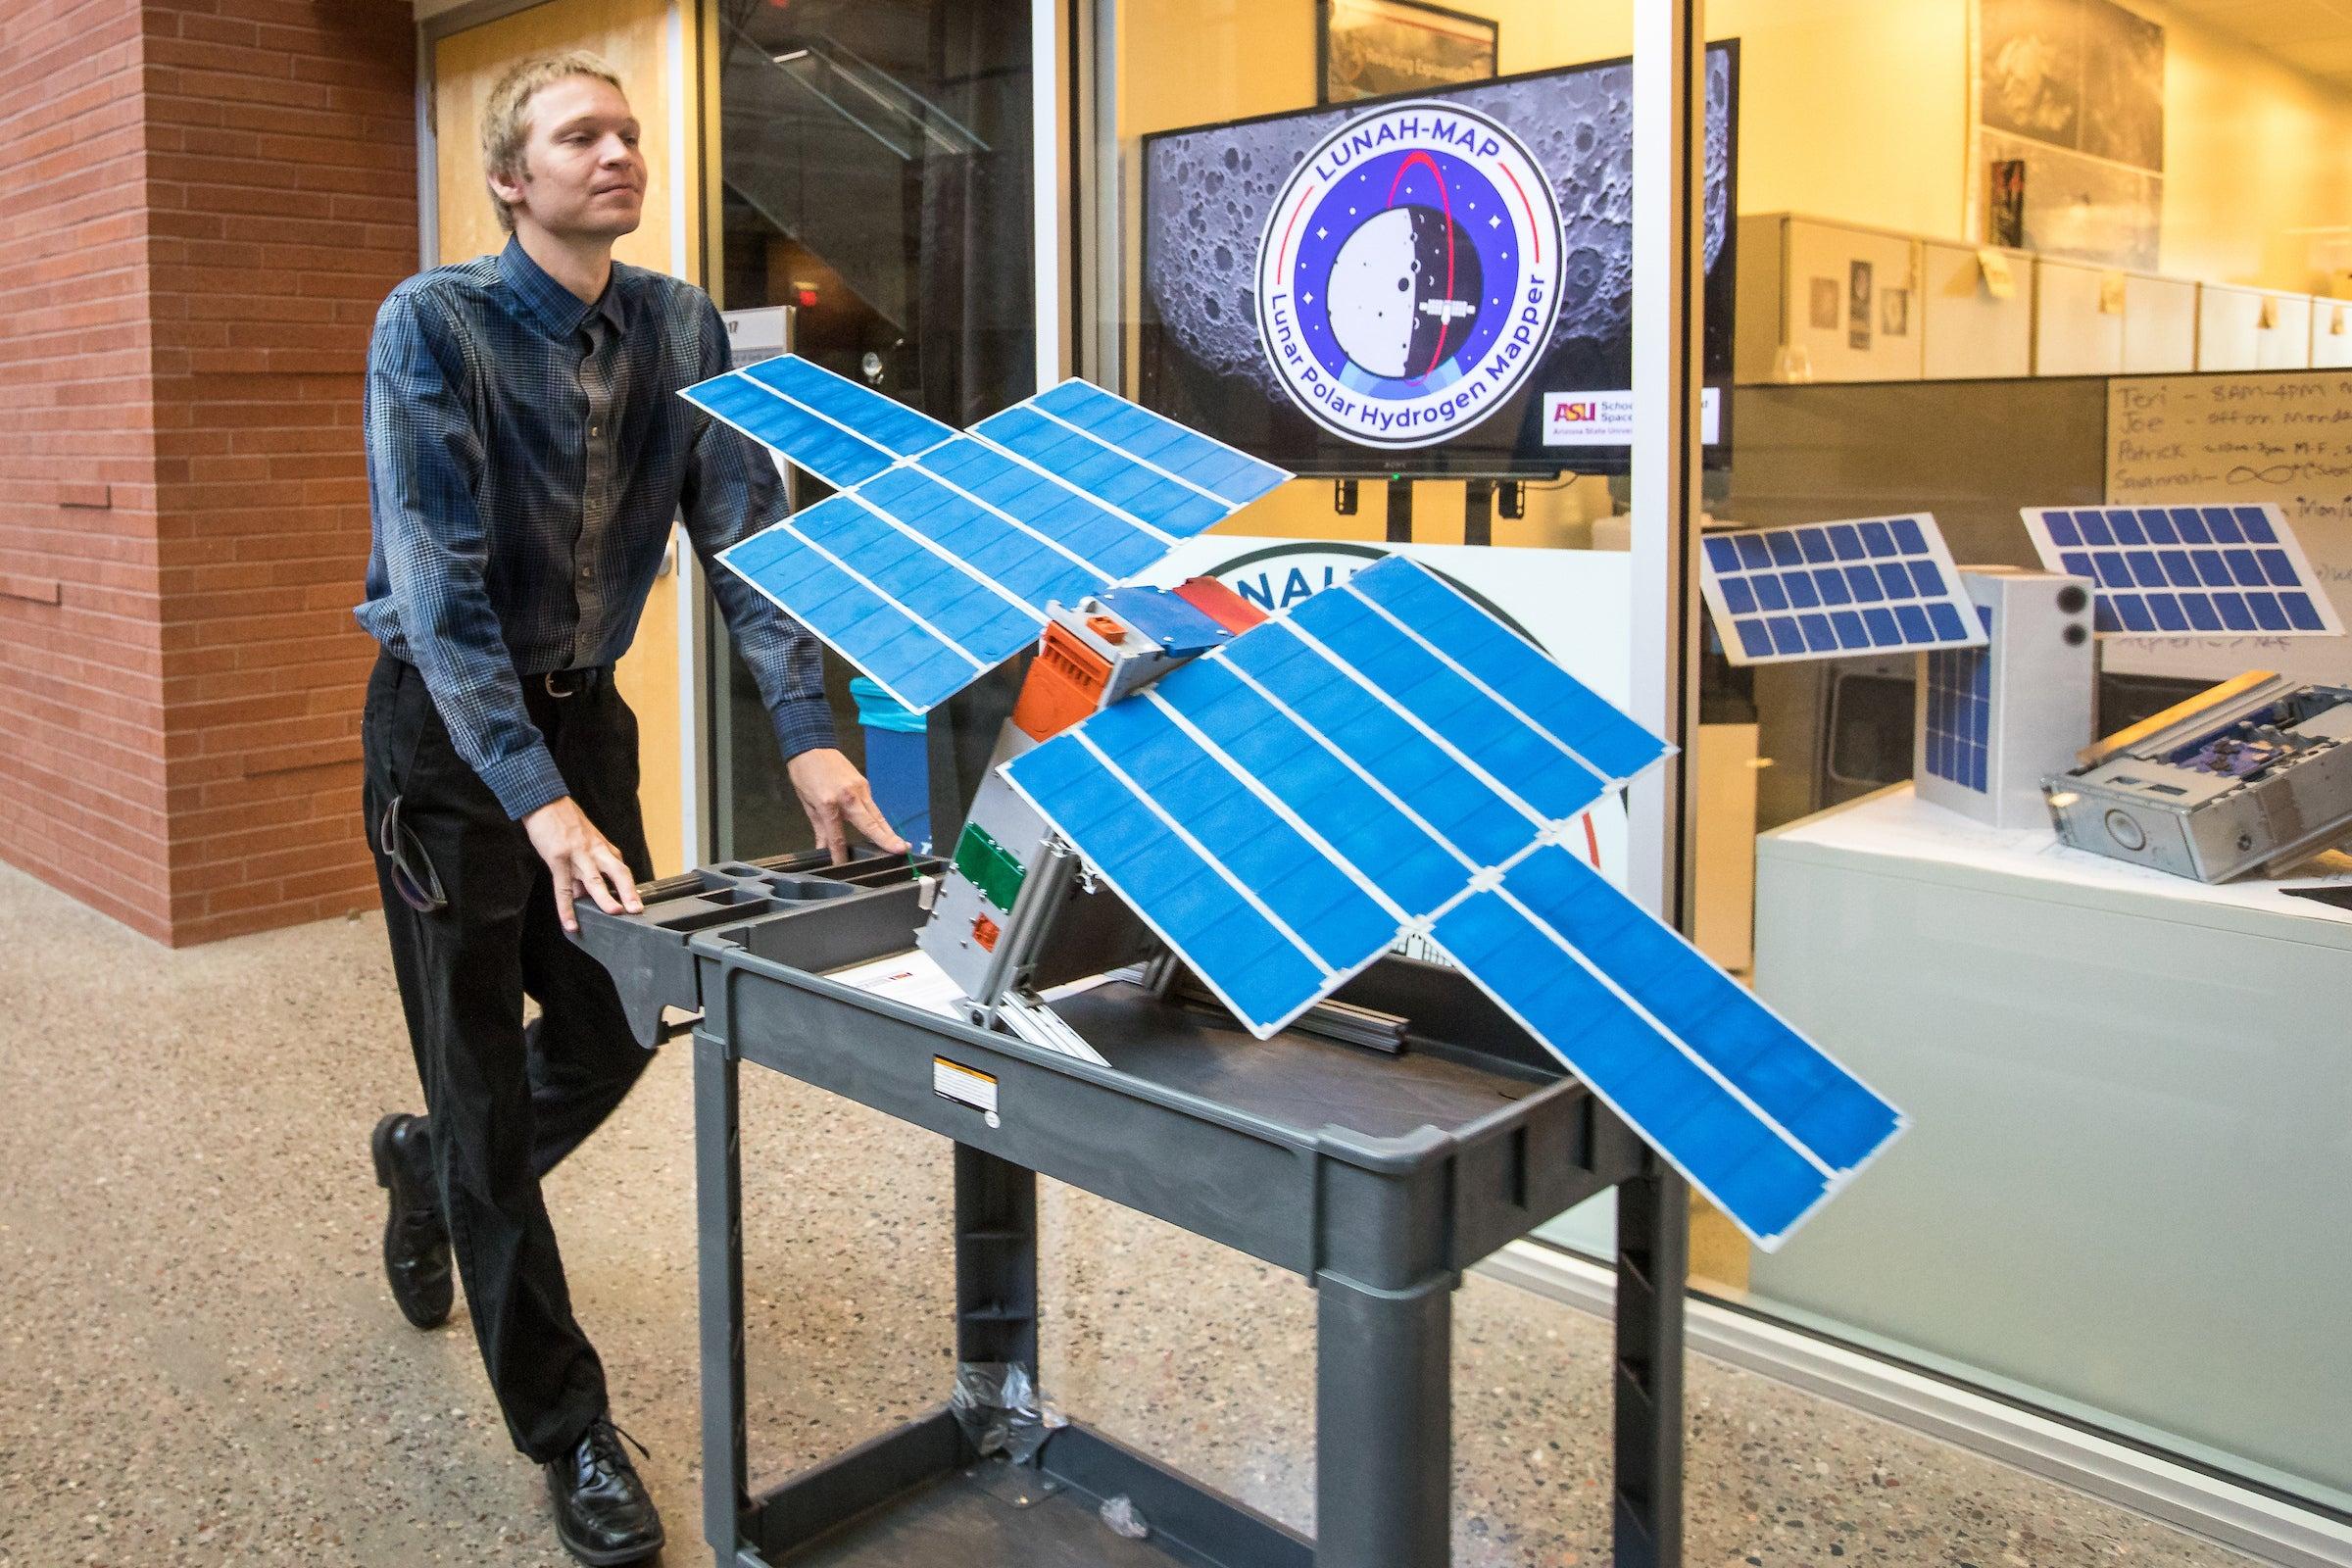 A student wheels a full-scale LunaH-Map model through a hallway